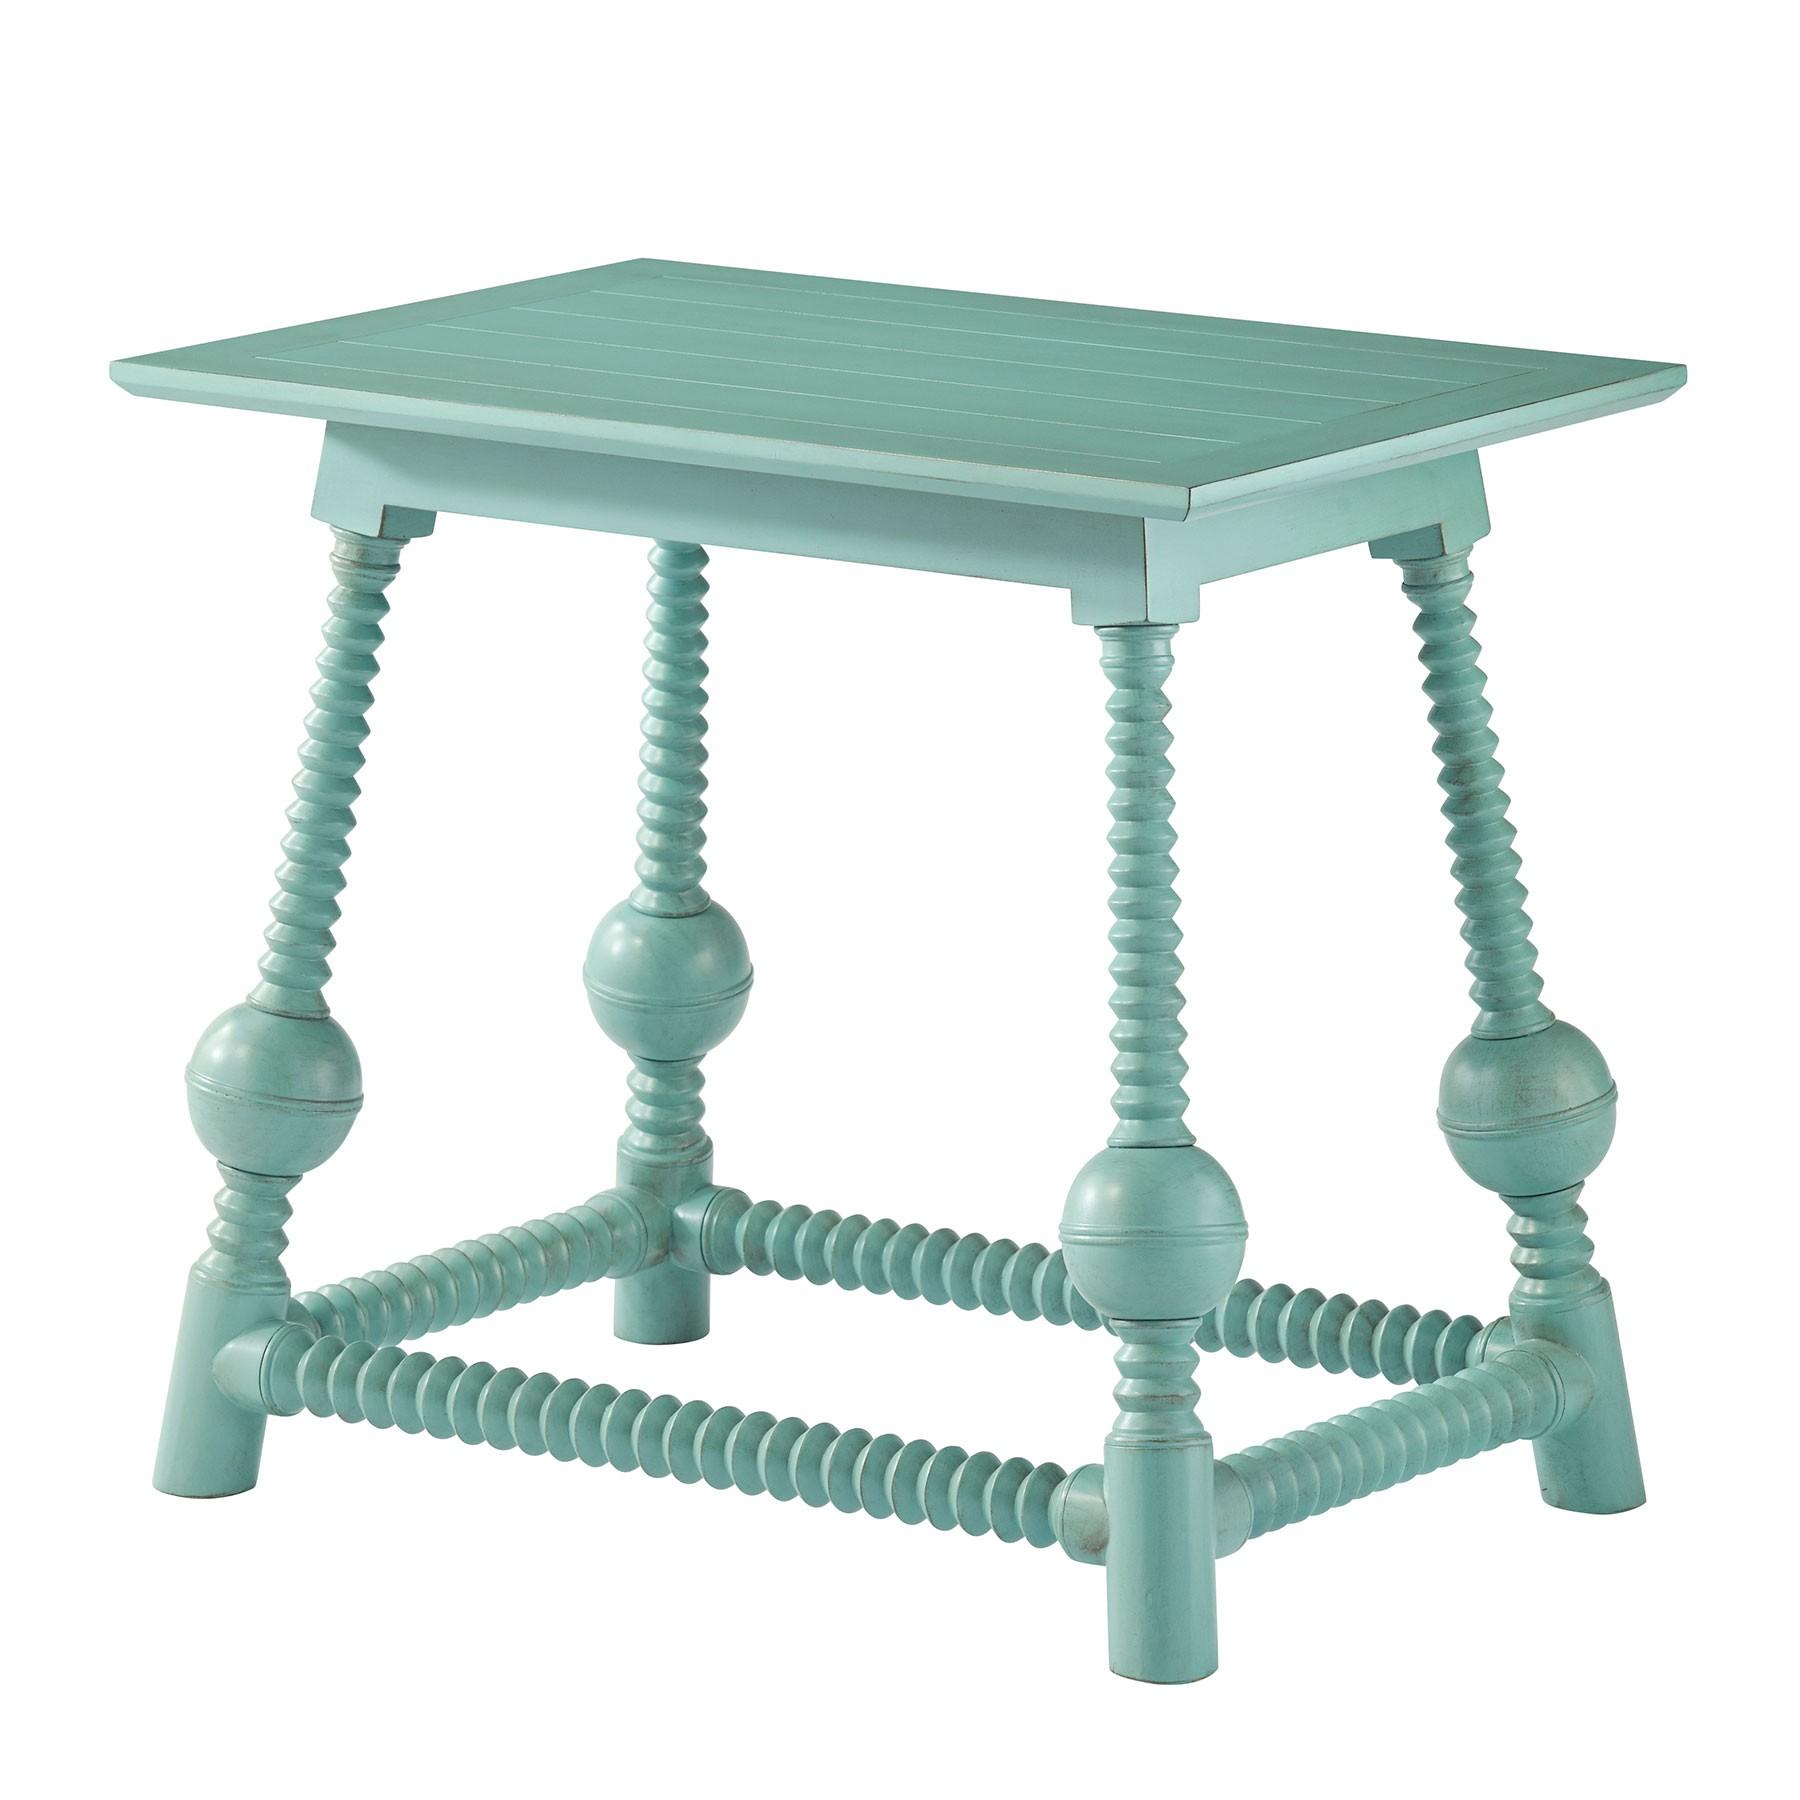 perry accent table bobbin globe theodore alexander teal west elm white desk distressed coffee set oval glass top ashley furniture round laminate paint nesting tables inch high